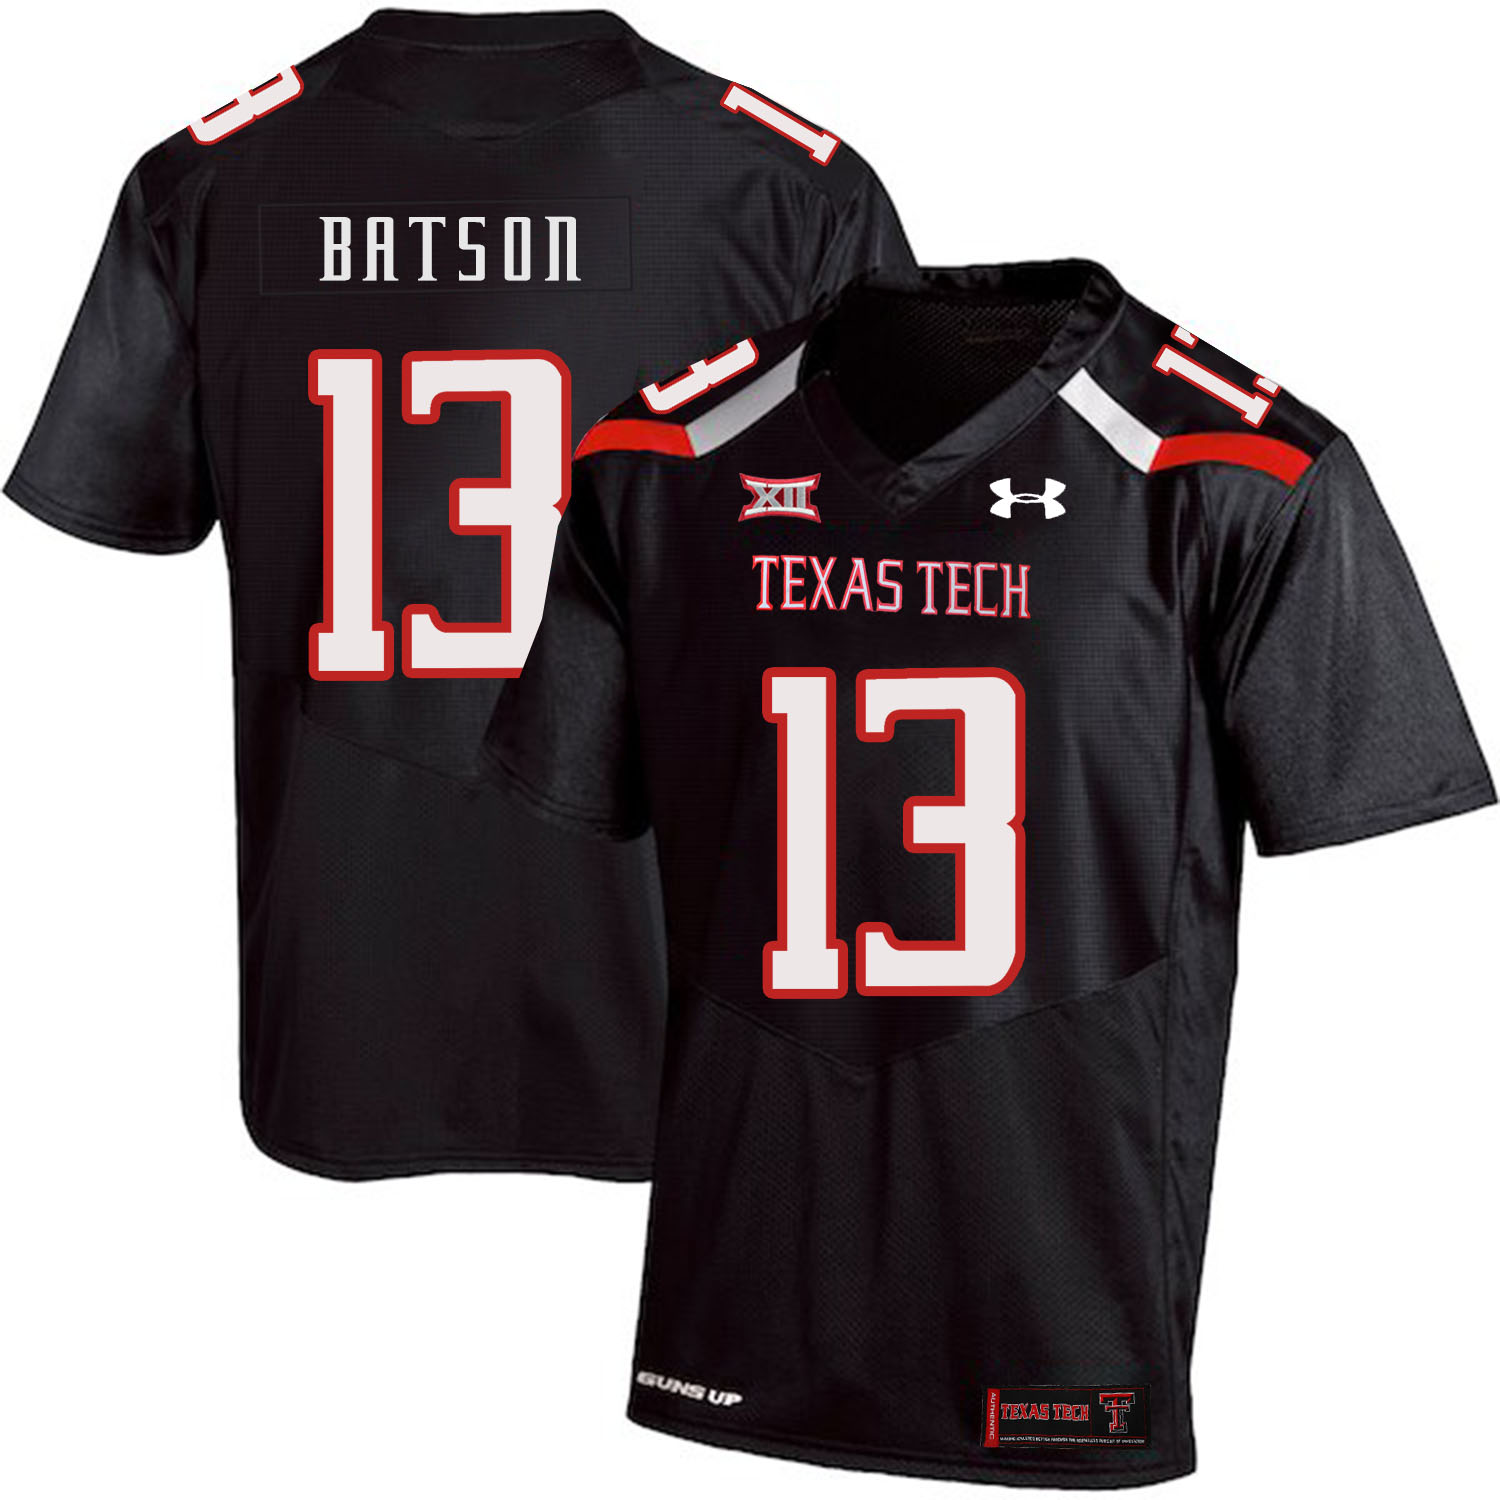 Texas Tech Red Raiders 13 Cameron Batson Black College Football Jersey